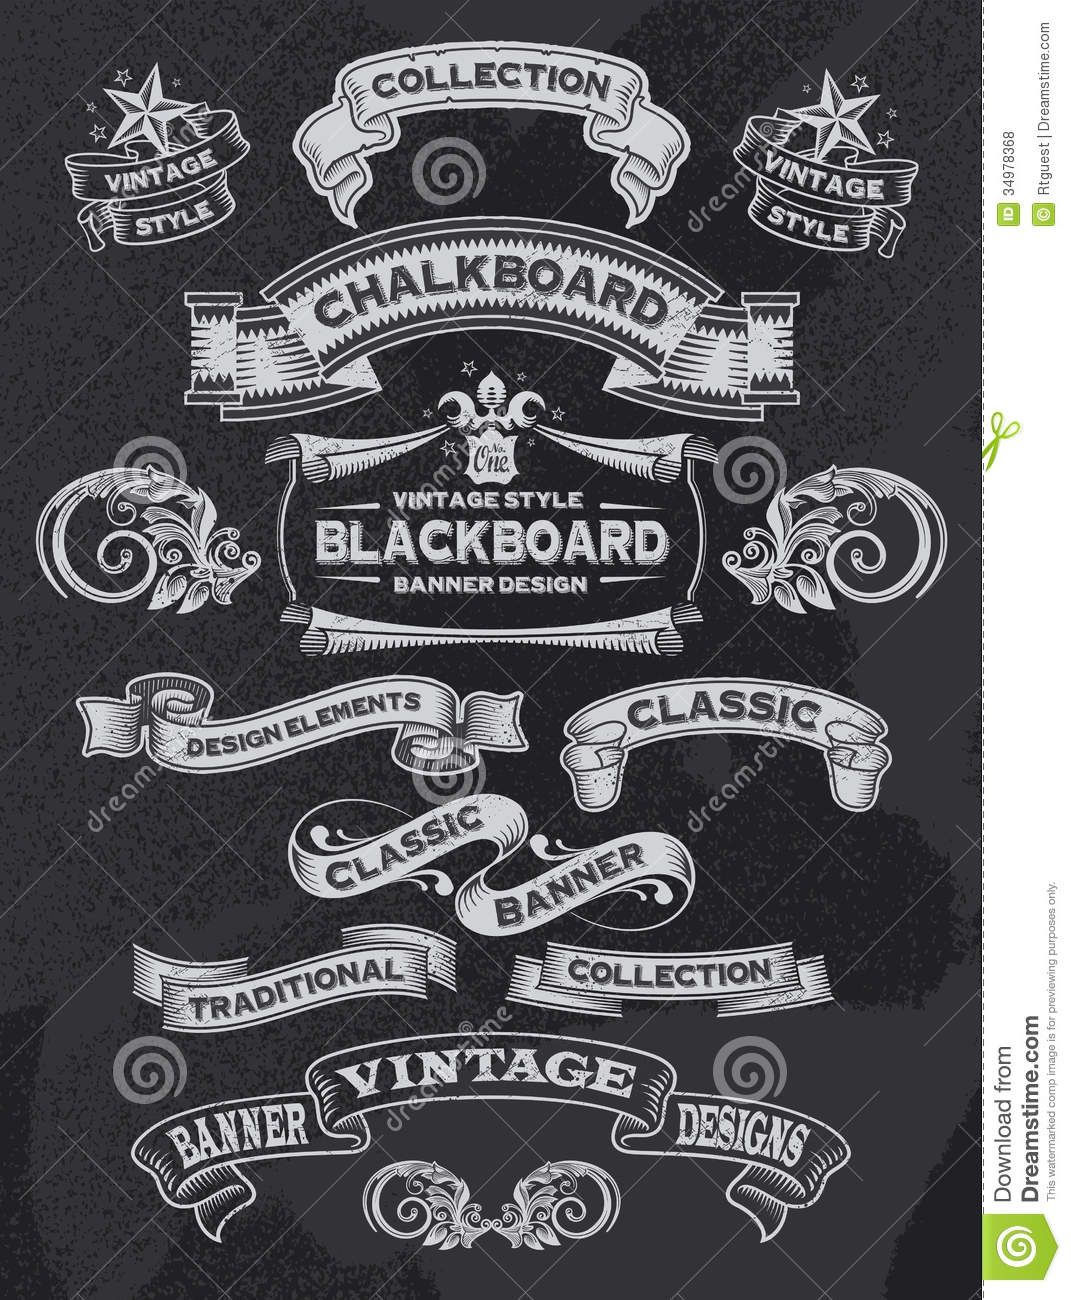 Download free vintage ornaments vintage ornaments and iders - Chalkboard Banners Retro Calligraphic Vintage Ornament Design Elements